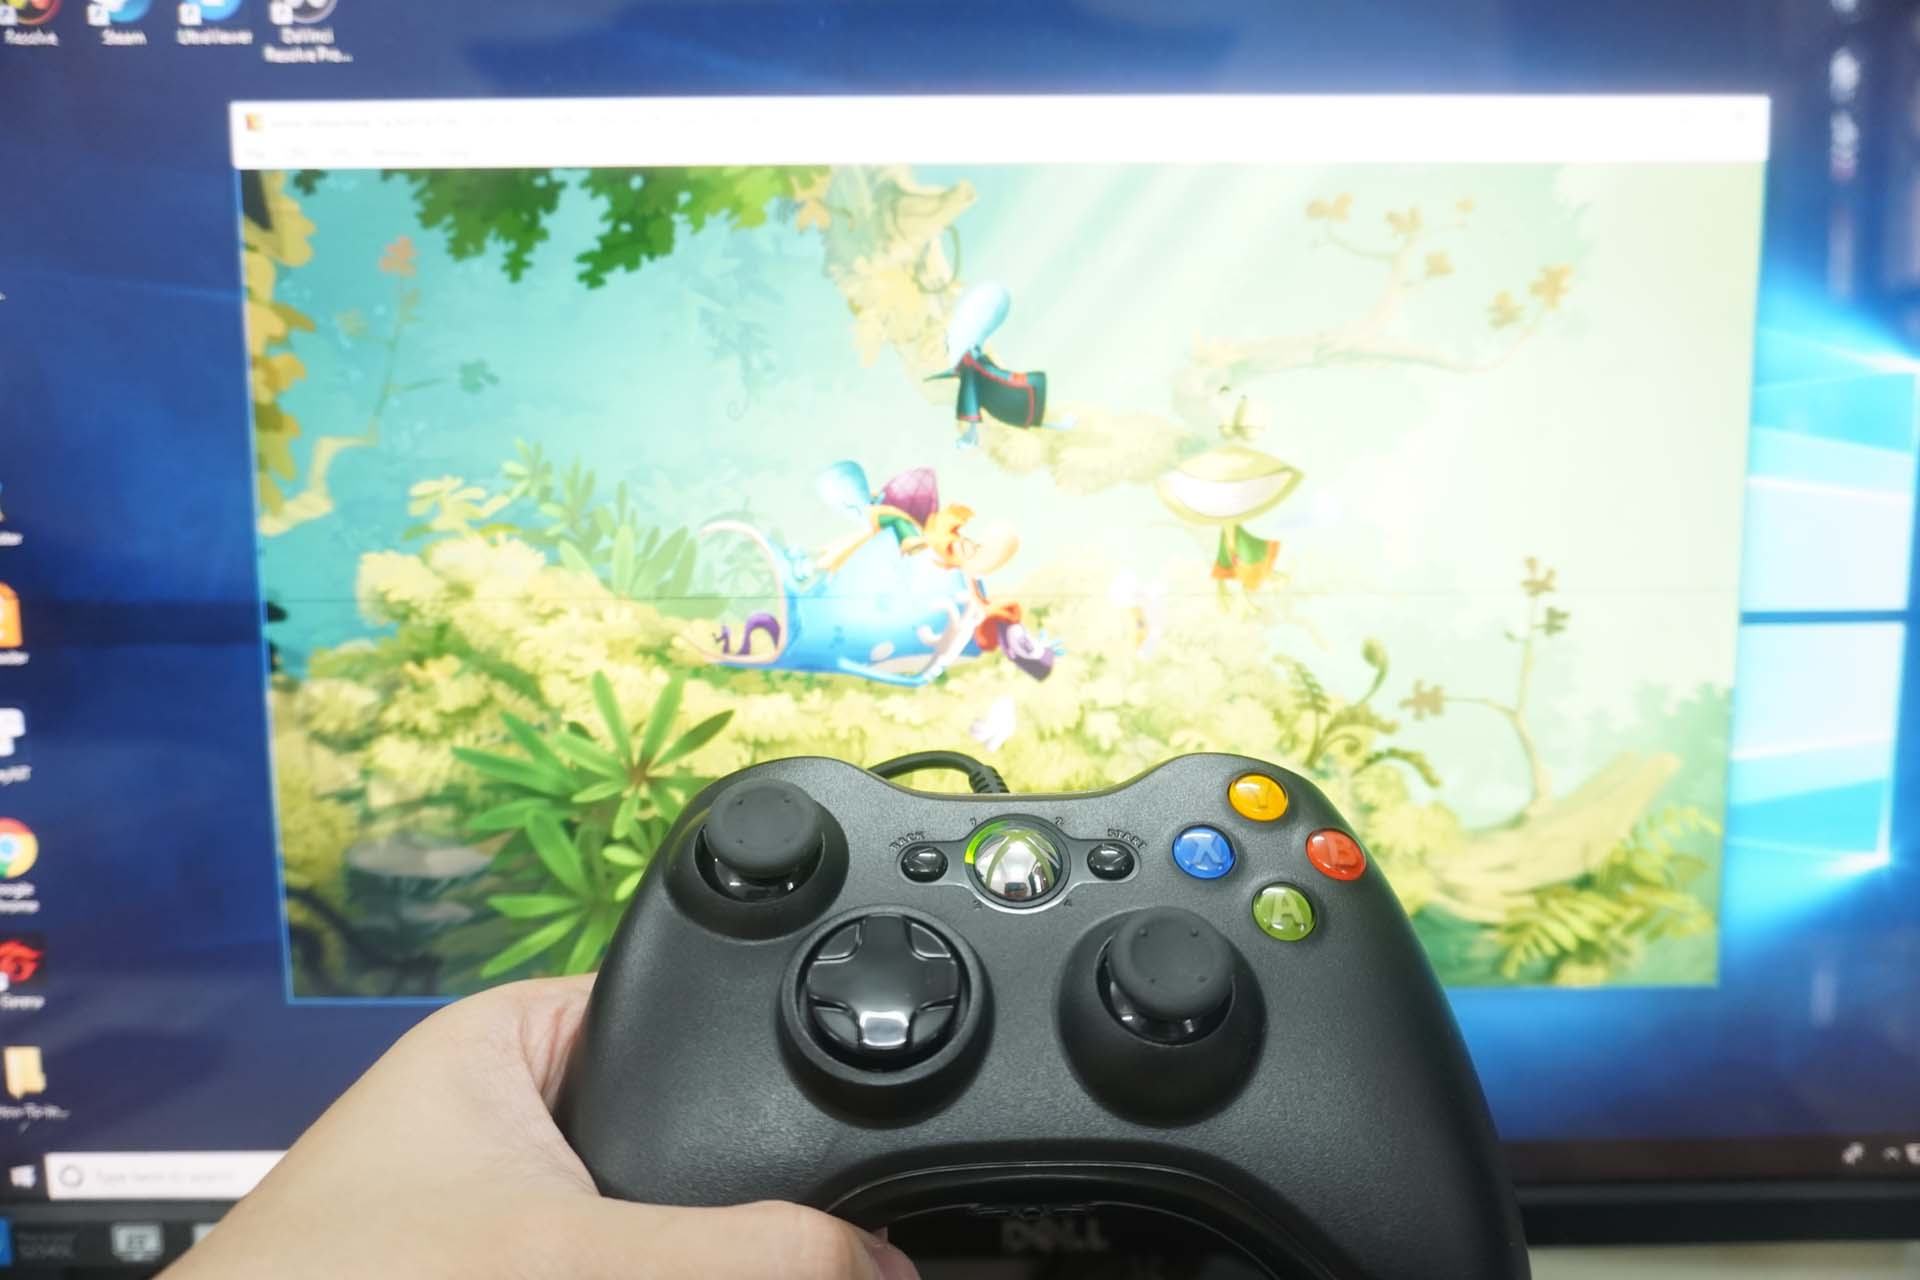 How To Connect An Xbox 360 Wired Controller To Windows 10 PC